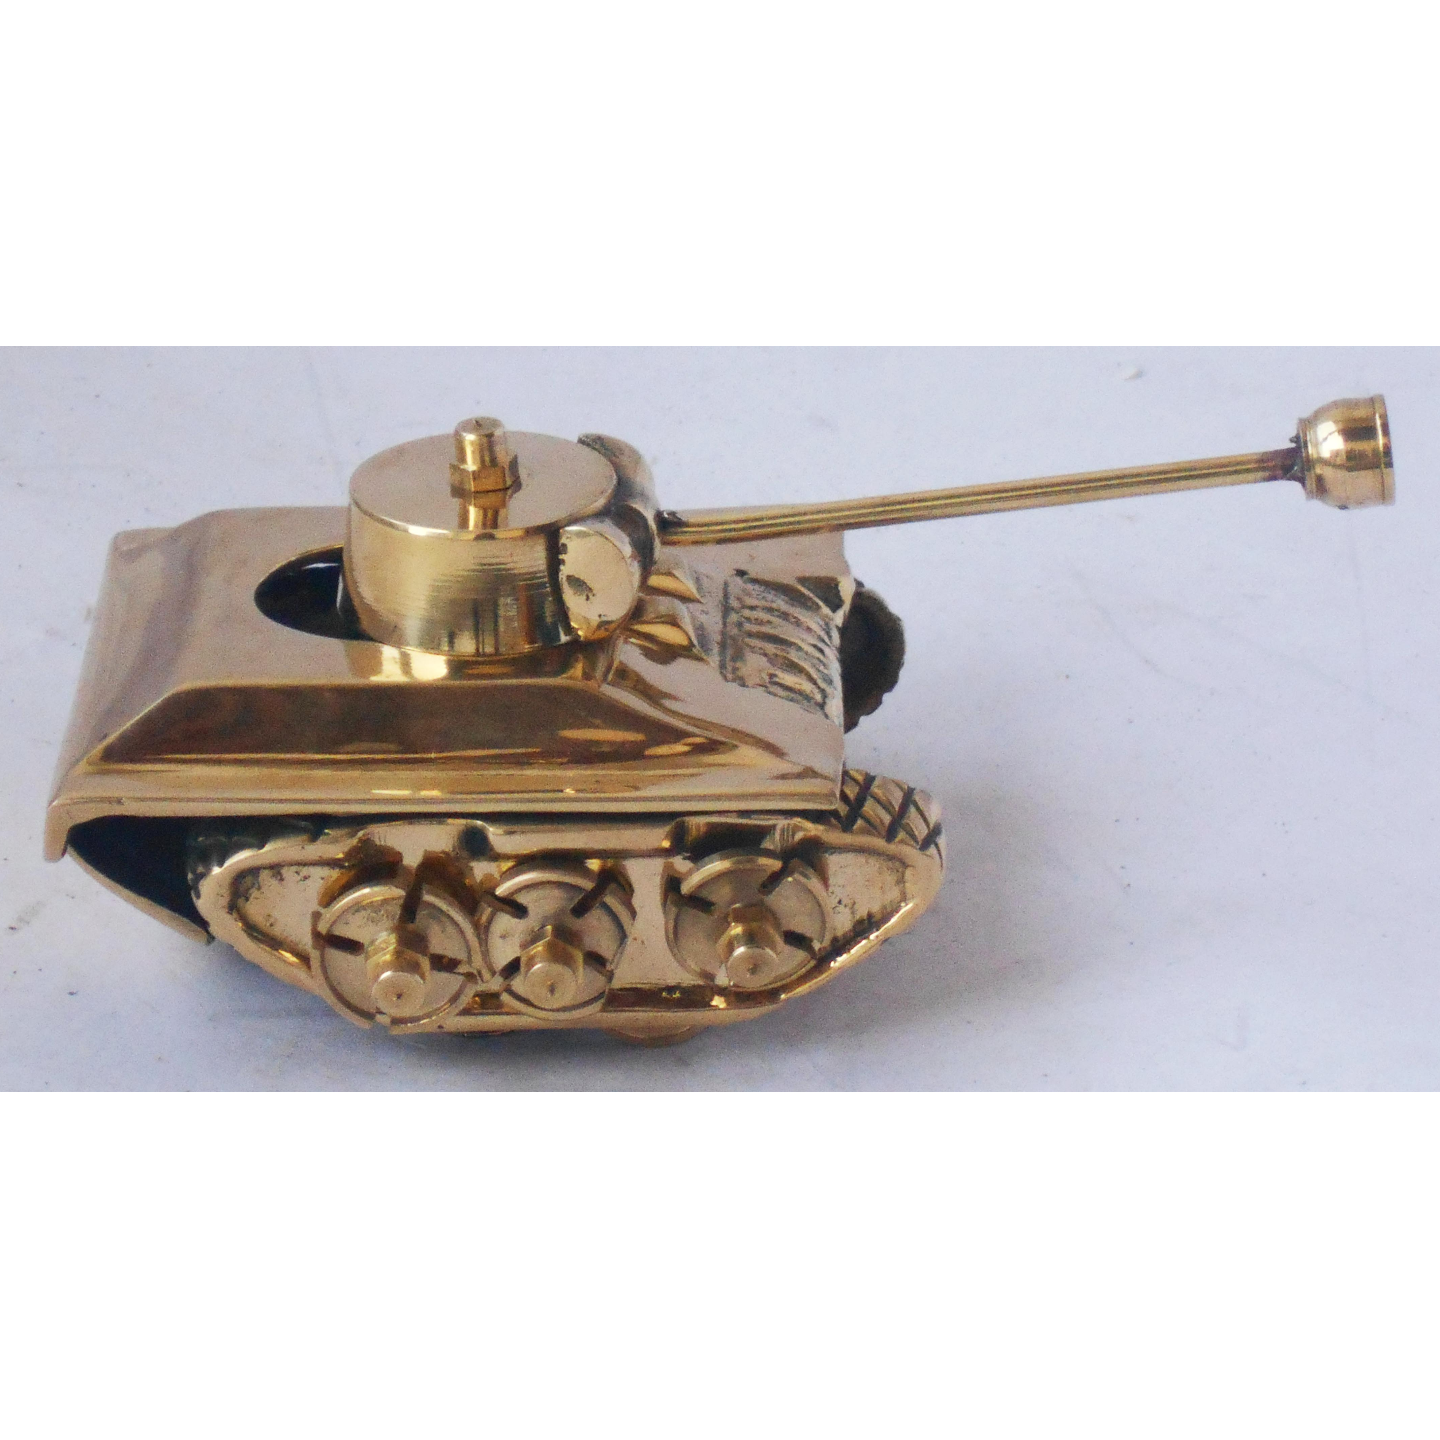 Brass Tank Toy Miniature For Children Playing- 5.5*3.2*2.5 Inch  (Z329 A)